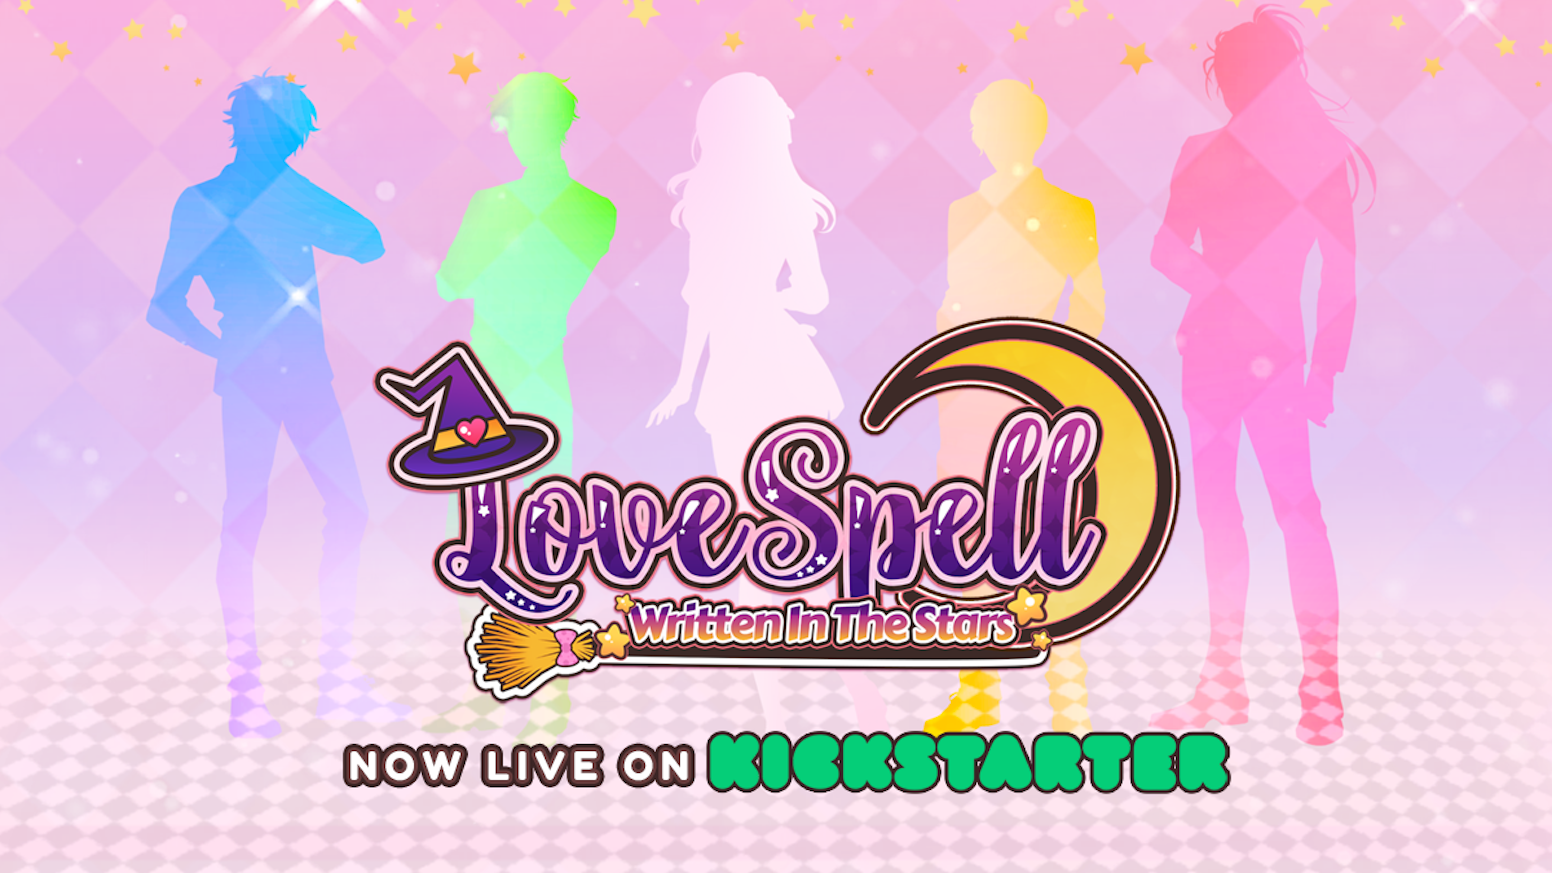 A romance visual novel/otome game about spells, adventures, penguins and the greatest magic of all: true love!